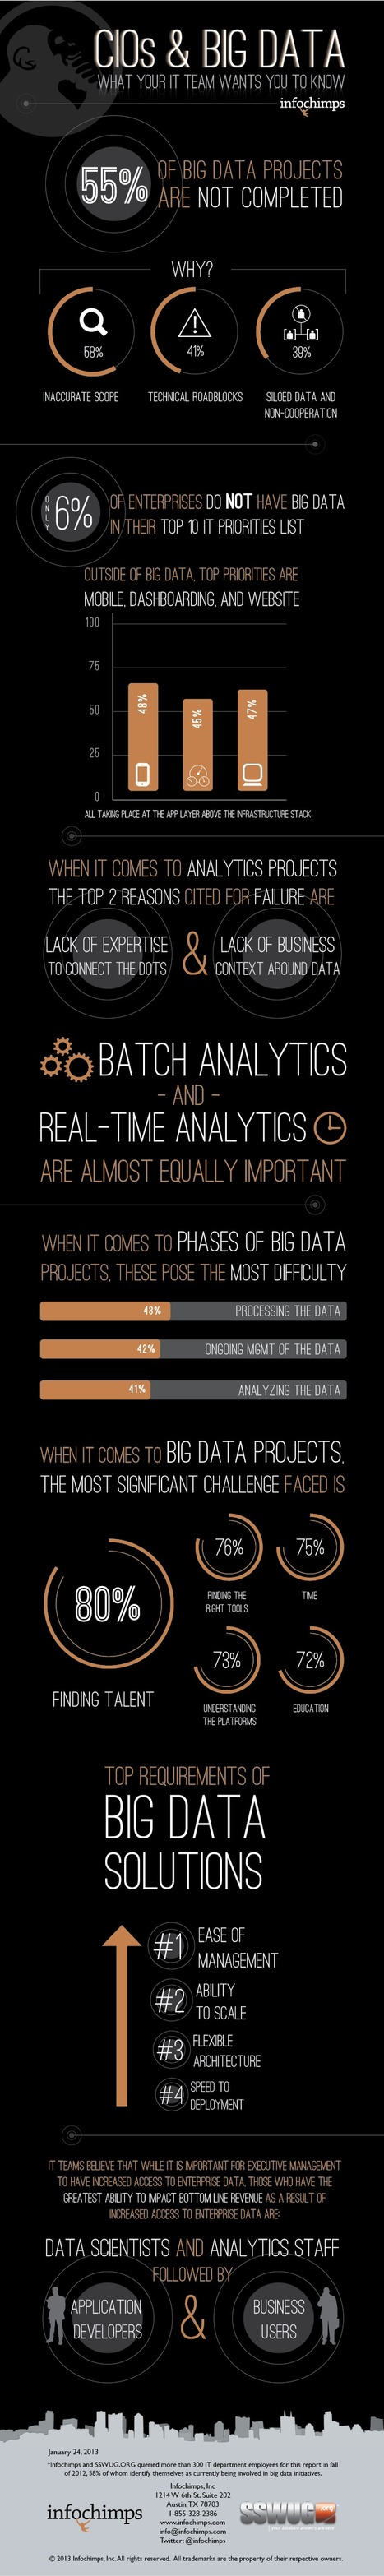 [INFOGRAPHIC] BIG DATA: What Your IT Team Wants You To Know | visual data | Scoop.it